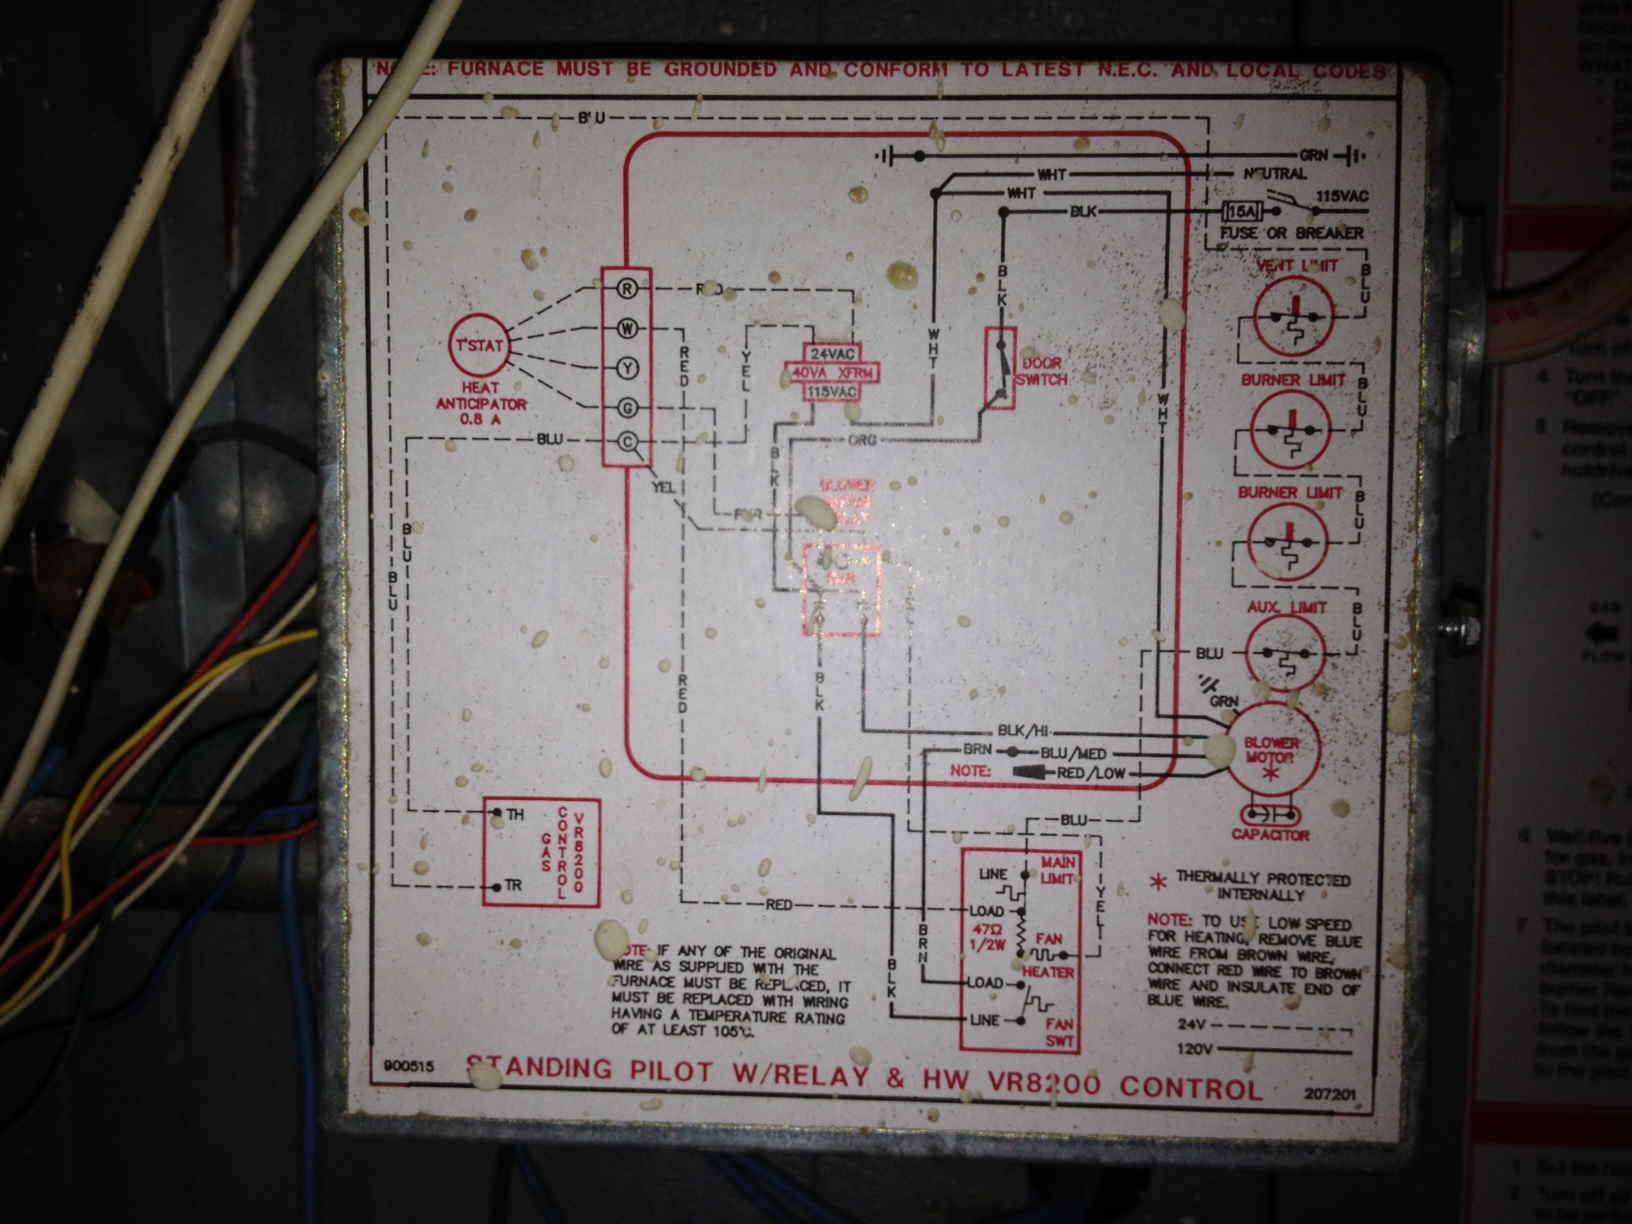 i am replacing a honeywell chronotherm iii with a 6 lead motor wiring schematics 6 lead motor wiring schematics 6 lead motor wiring schematics 6 lead motor wiring schematics